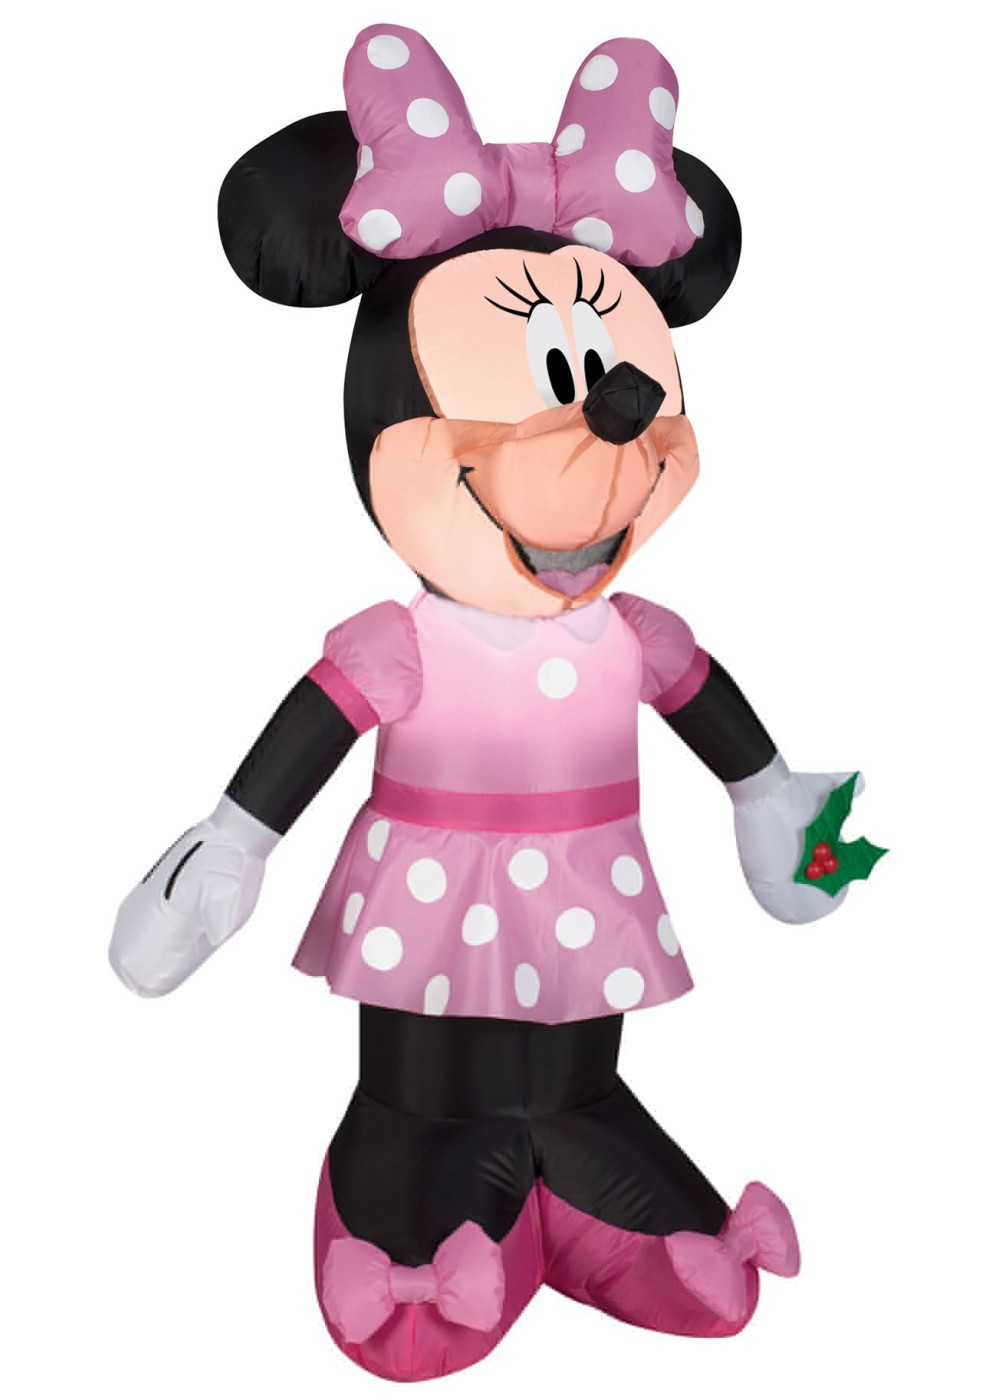 Minnie Mouse Airblown Inflatable Decorations